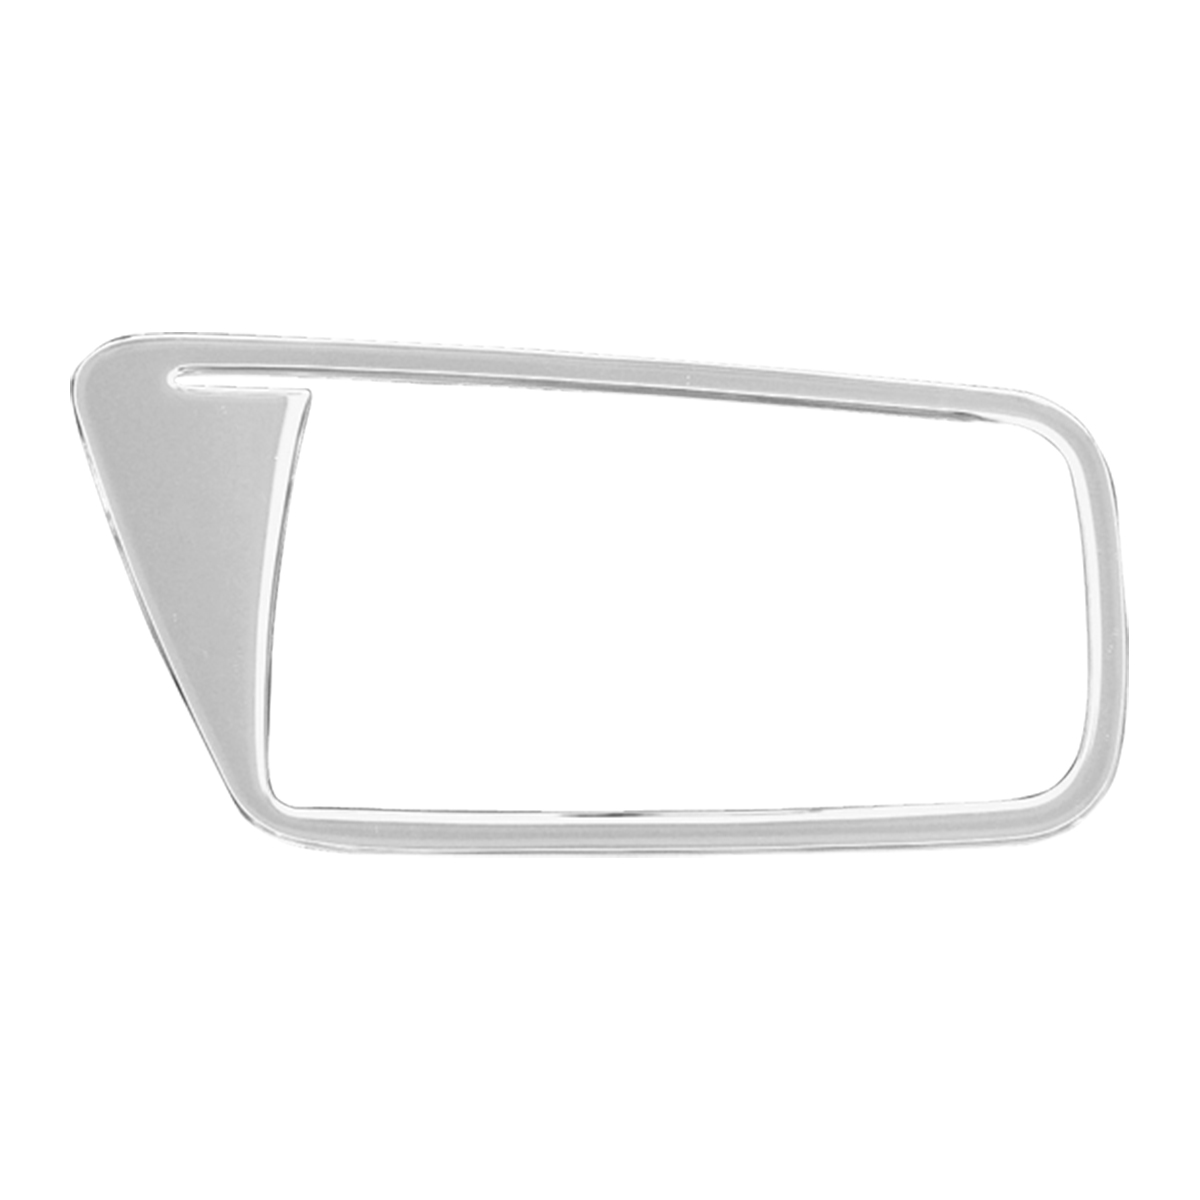 68929 KW Chrome Soft Plastic Driver Side Door Ring